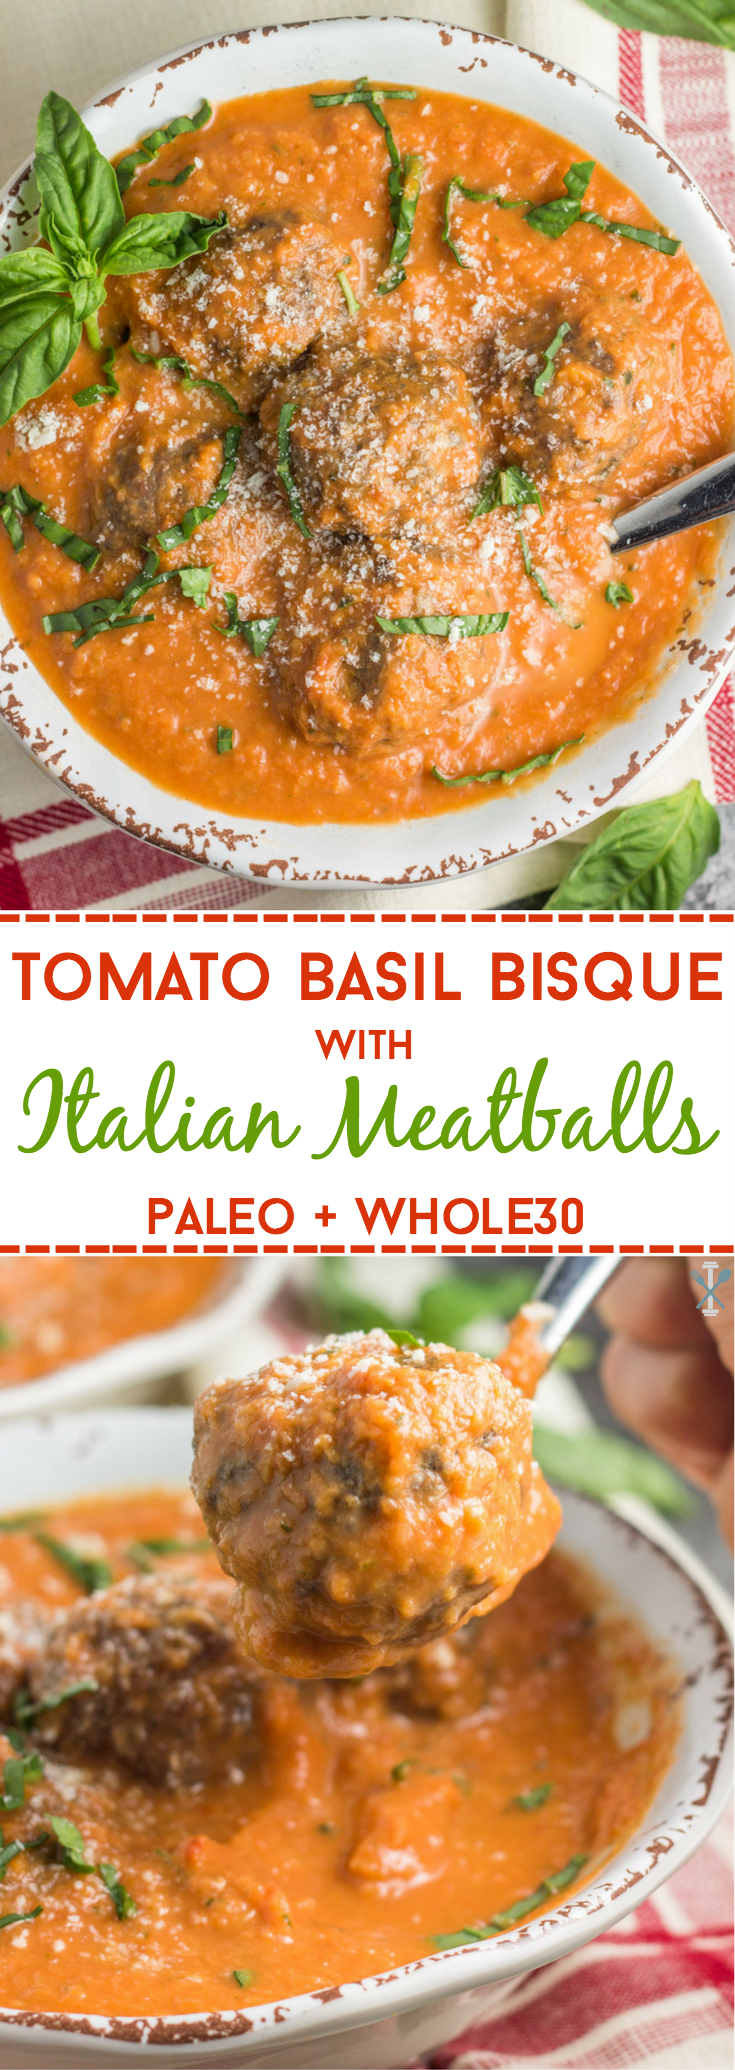 This dairy free and Whole30 compliant tomato basil bisque with Italian meatballs is an easy winter soup with simple ingredients! The perfect paleo dinner the whole family will love.